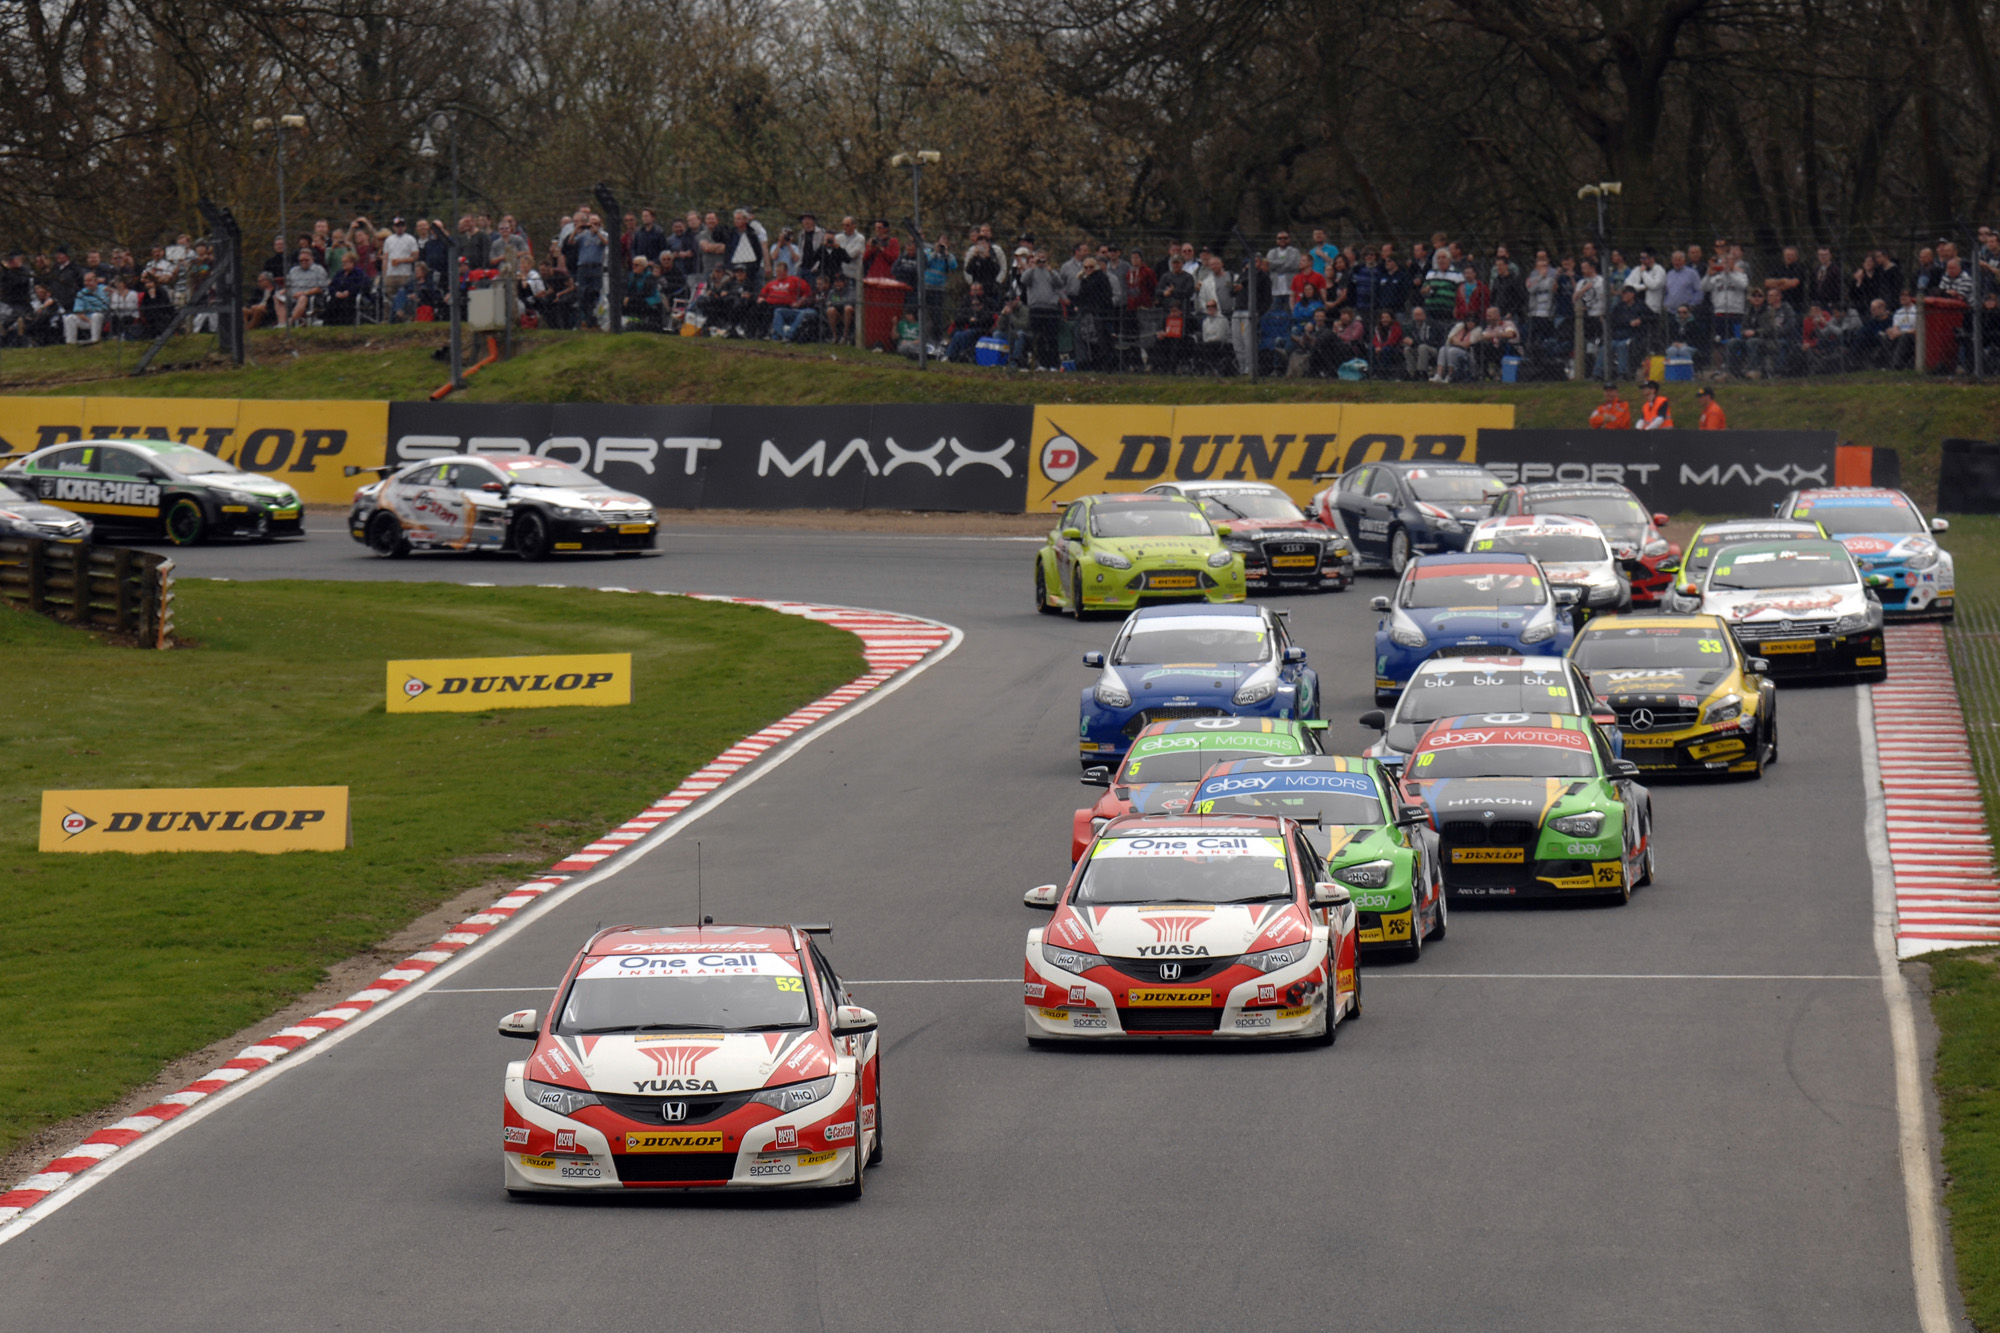 News Shopper: Gordon Shedden and Matt Neal lead at the start of race two